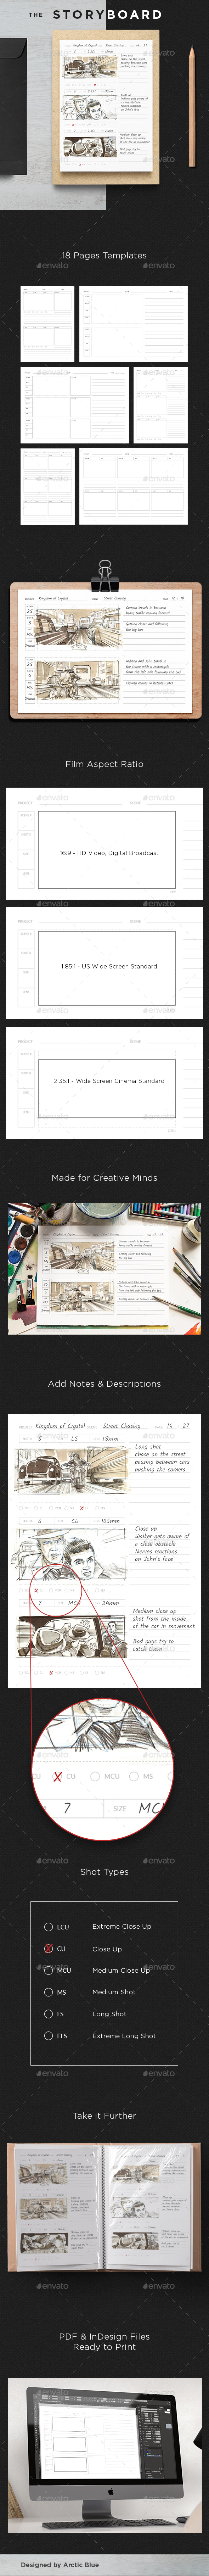 The Storyboard - Miscellaneous Print Templates